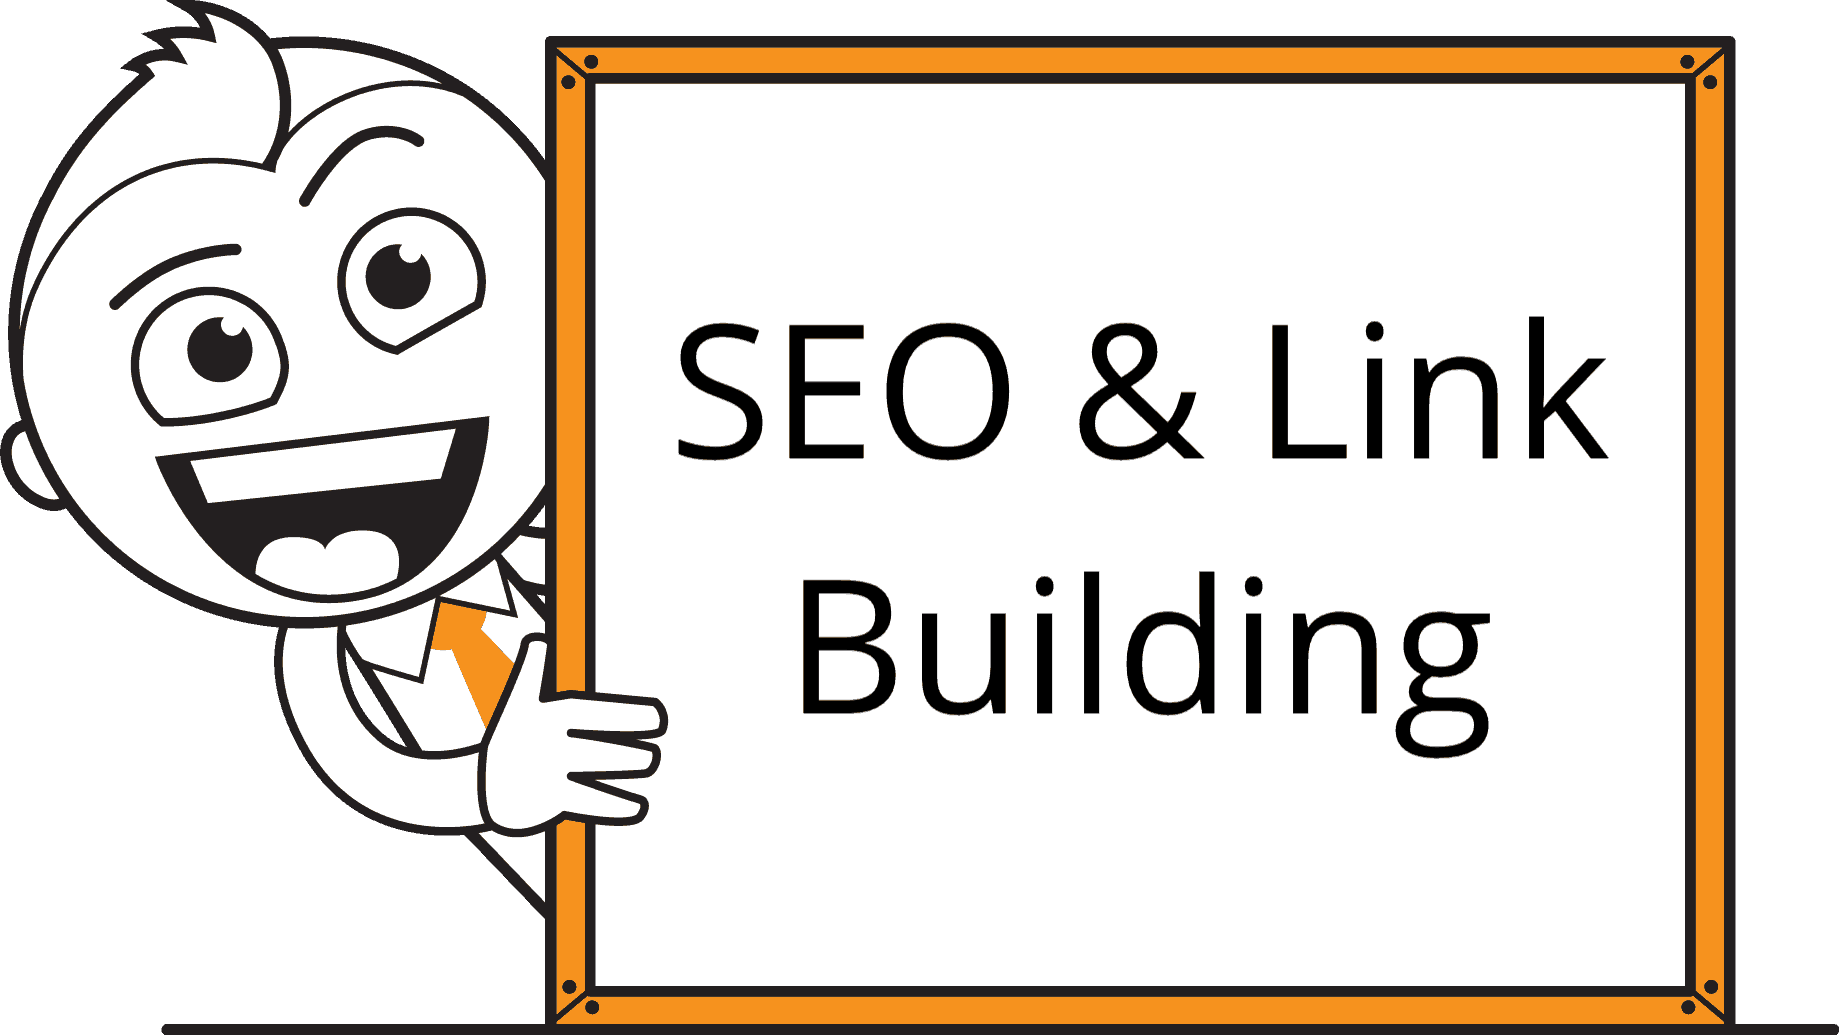 Search engine optimization and link building